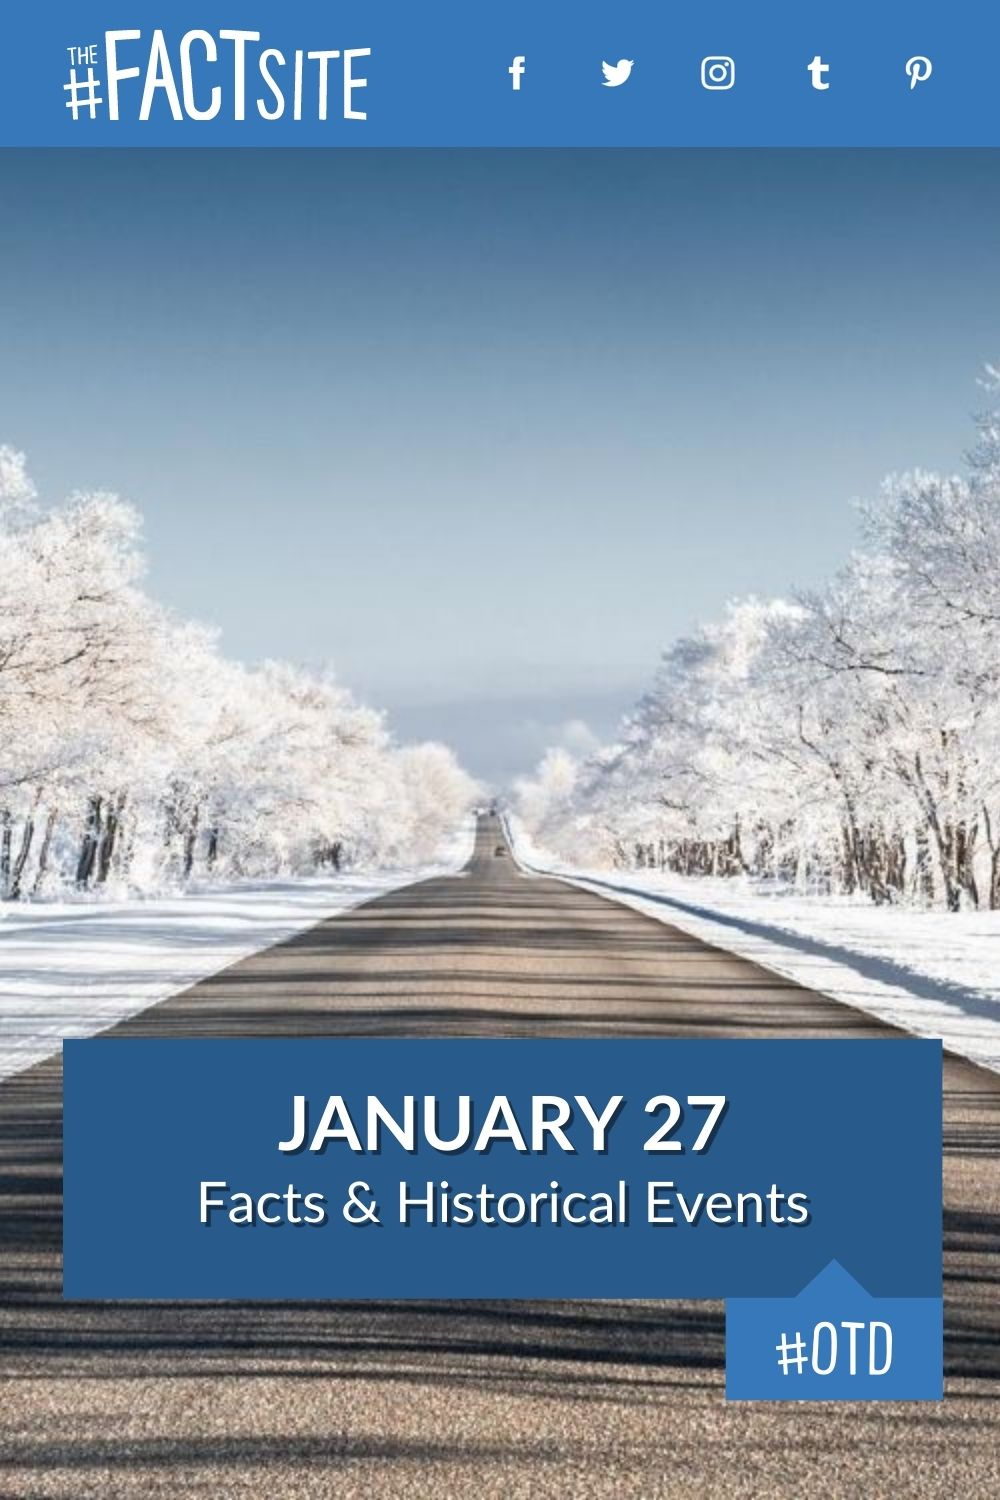 Facts & Historic Events That Happened on January 27